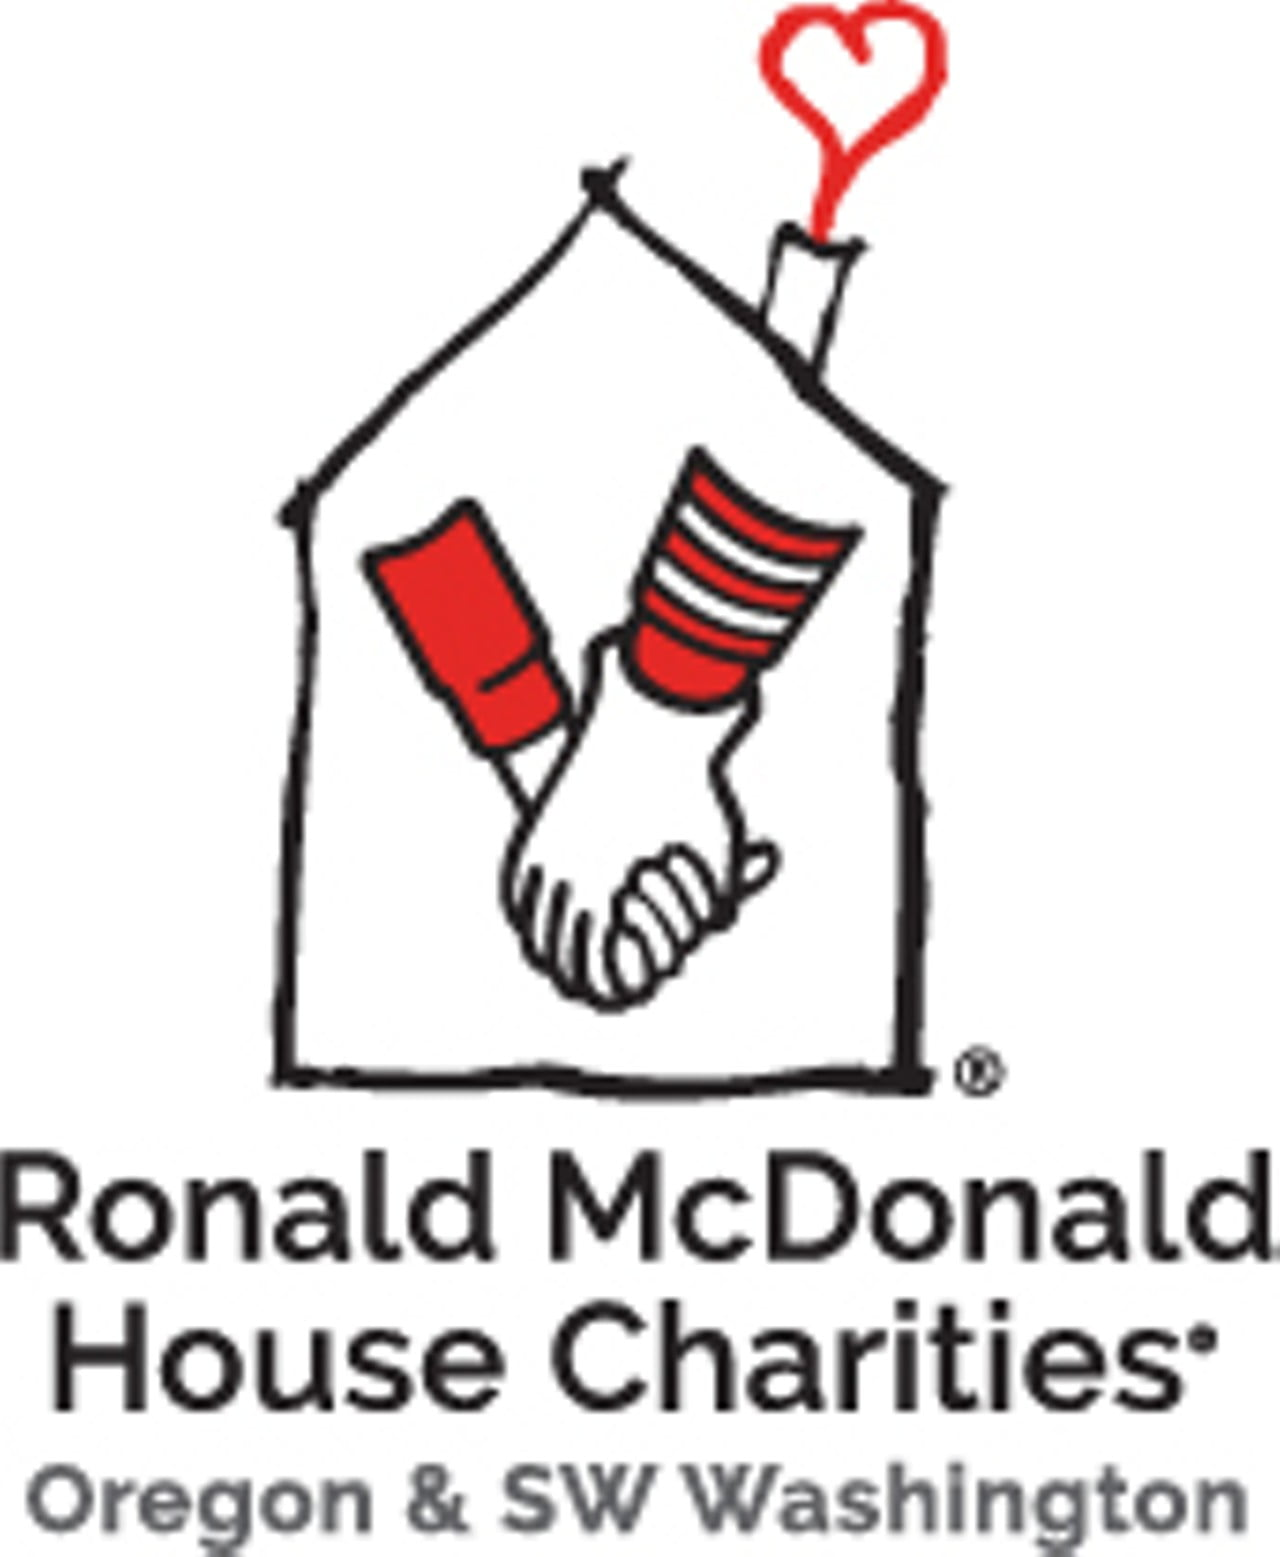 Ronald McDonald House Charities Oregon & SW Washington